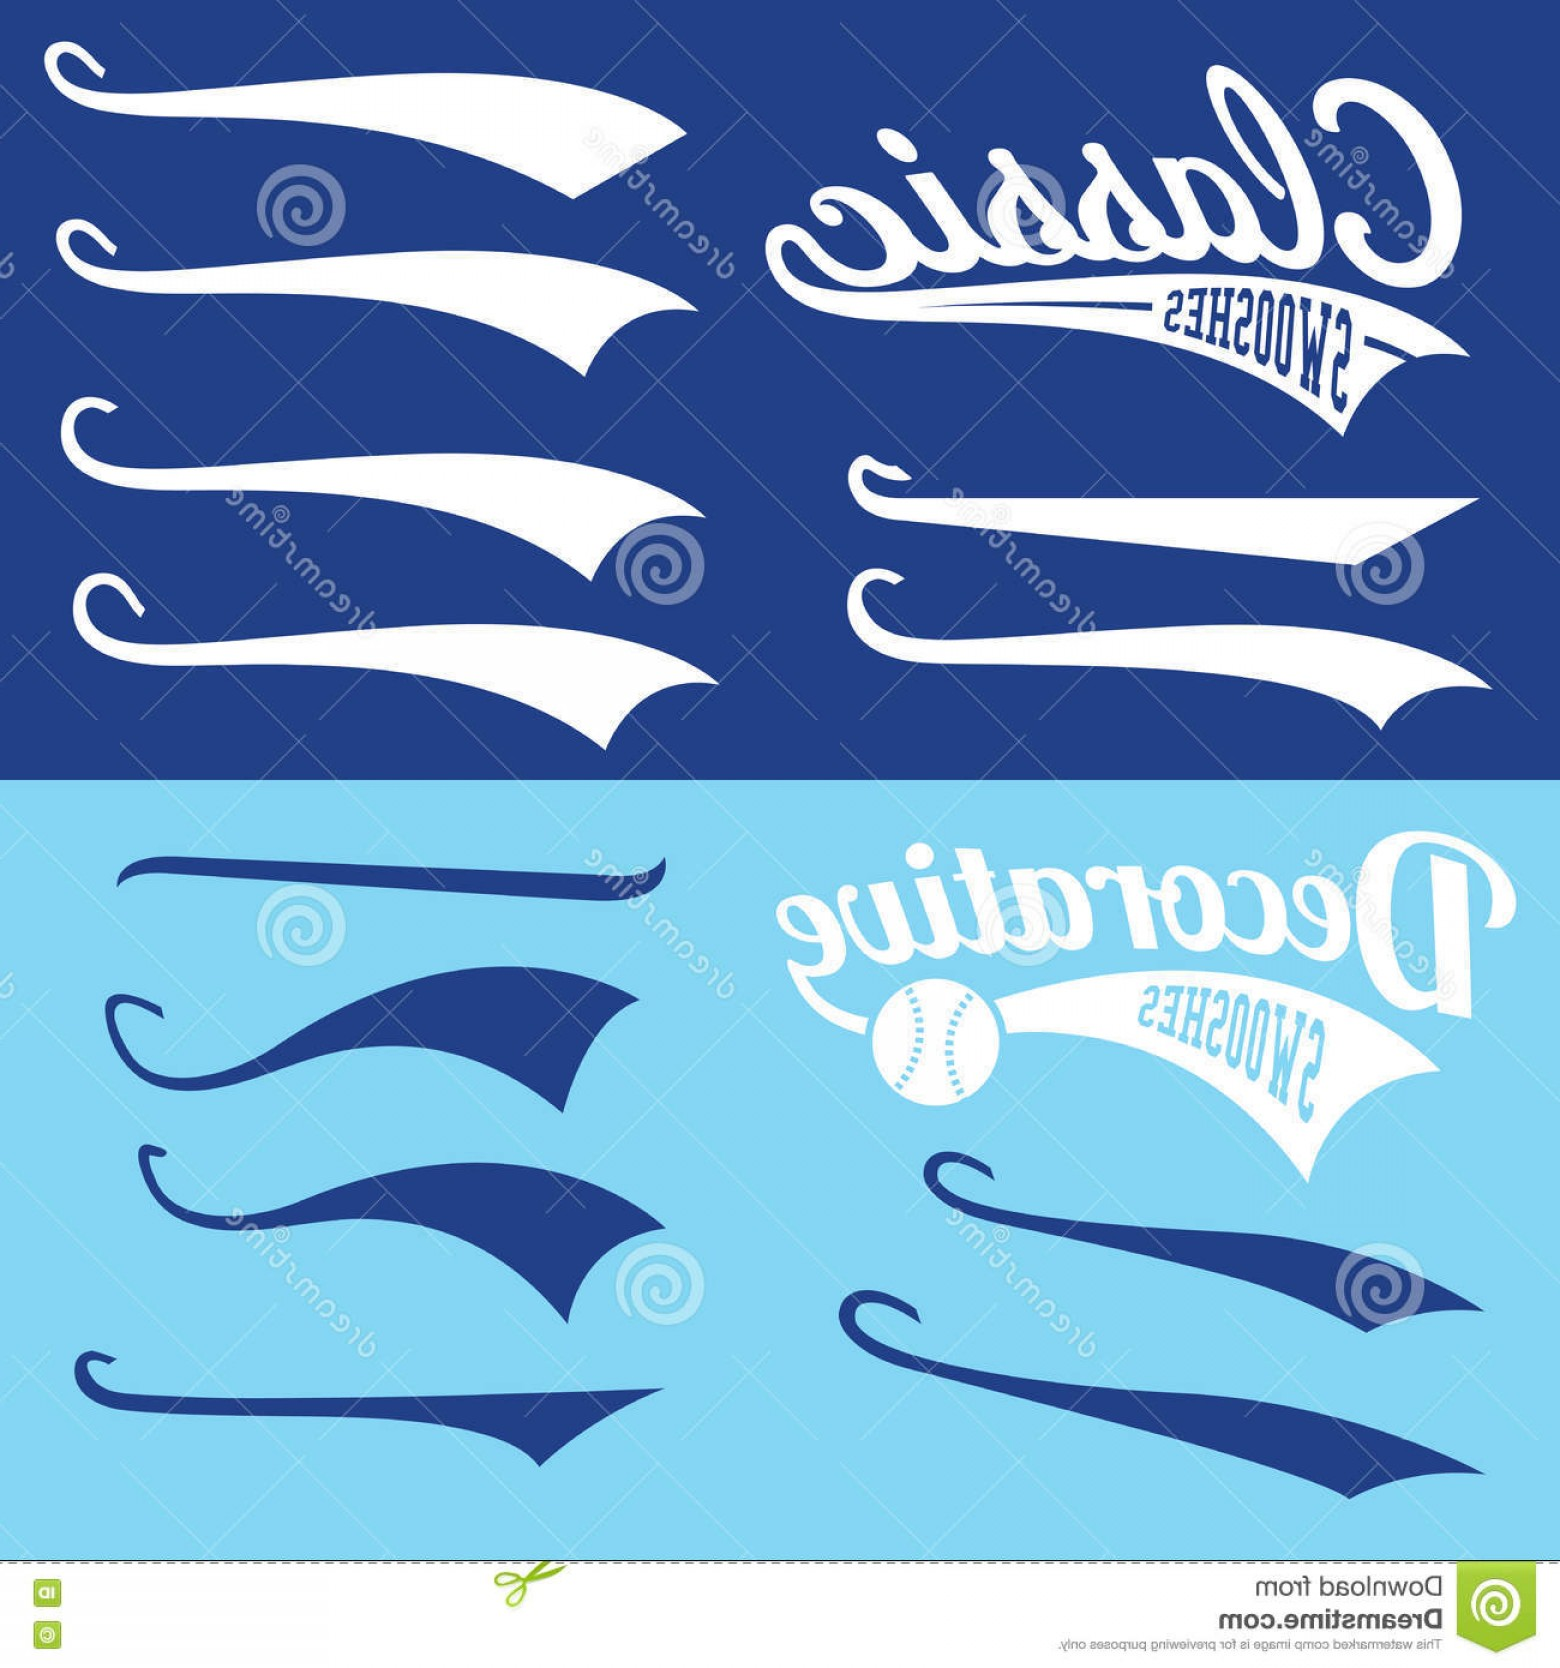 Baseball Tail Vector at GetDrawings com | Free for personal